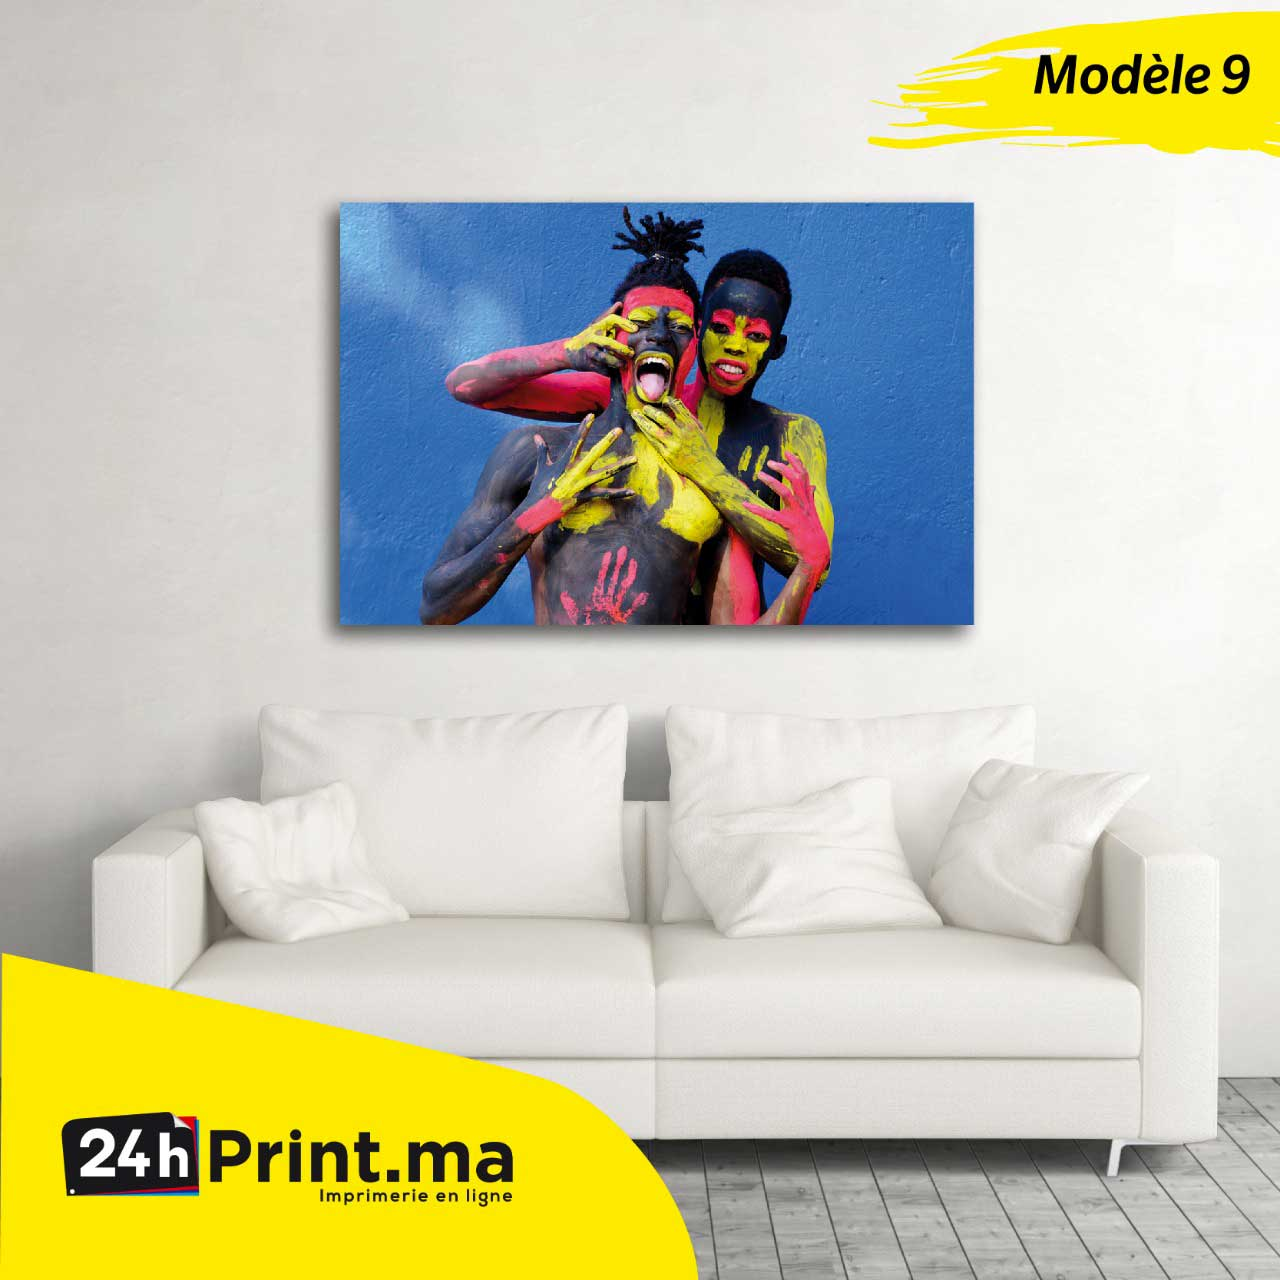 https://www.24hprint.ma/images/products_gallery_images/926.jpg